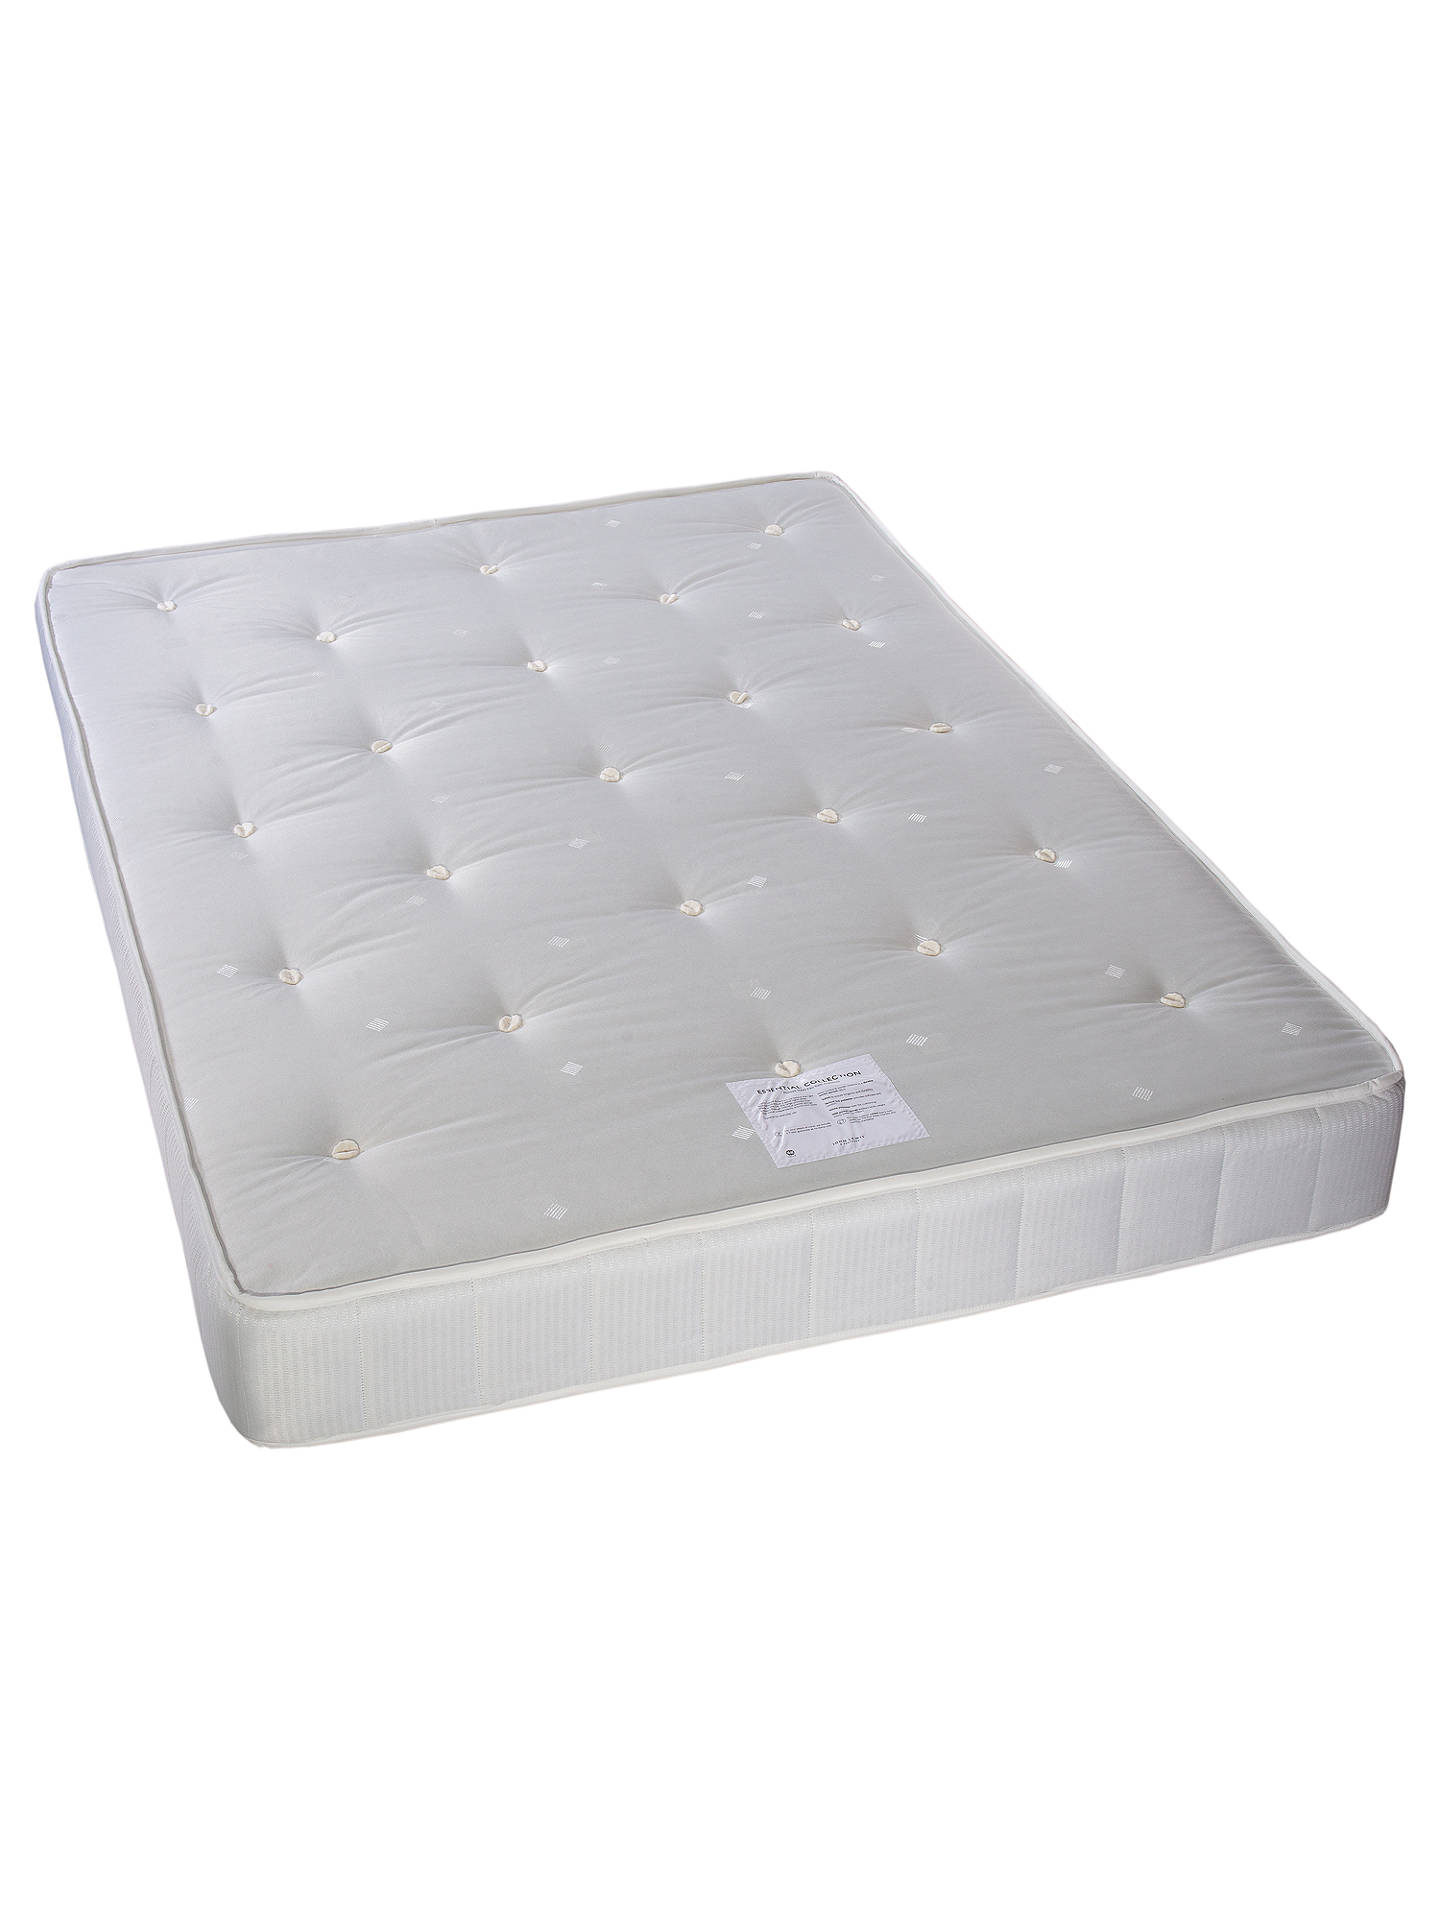 BuyJohn Lewis & Partners Essentials Collection Pocket 1000, Ortho Support Pocket Spring Mattress, Small Double Online at johnlewis.com